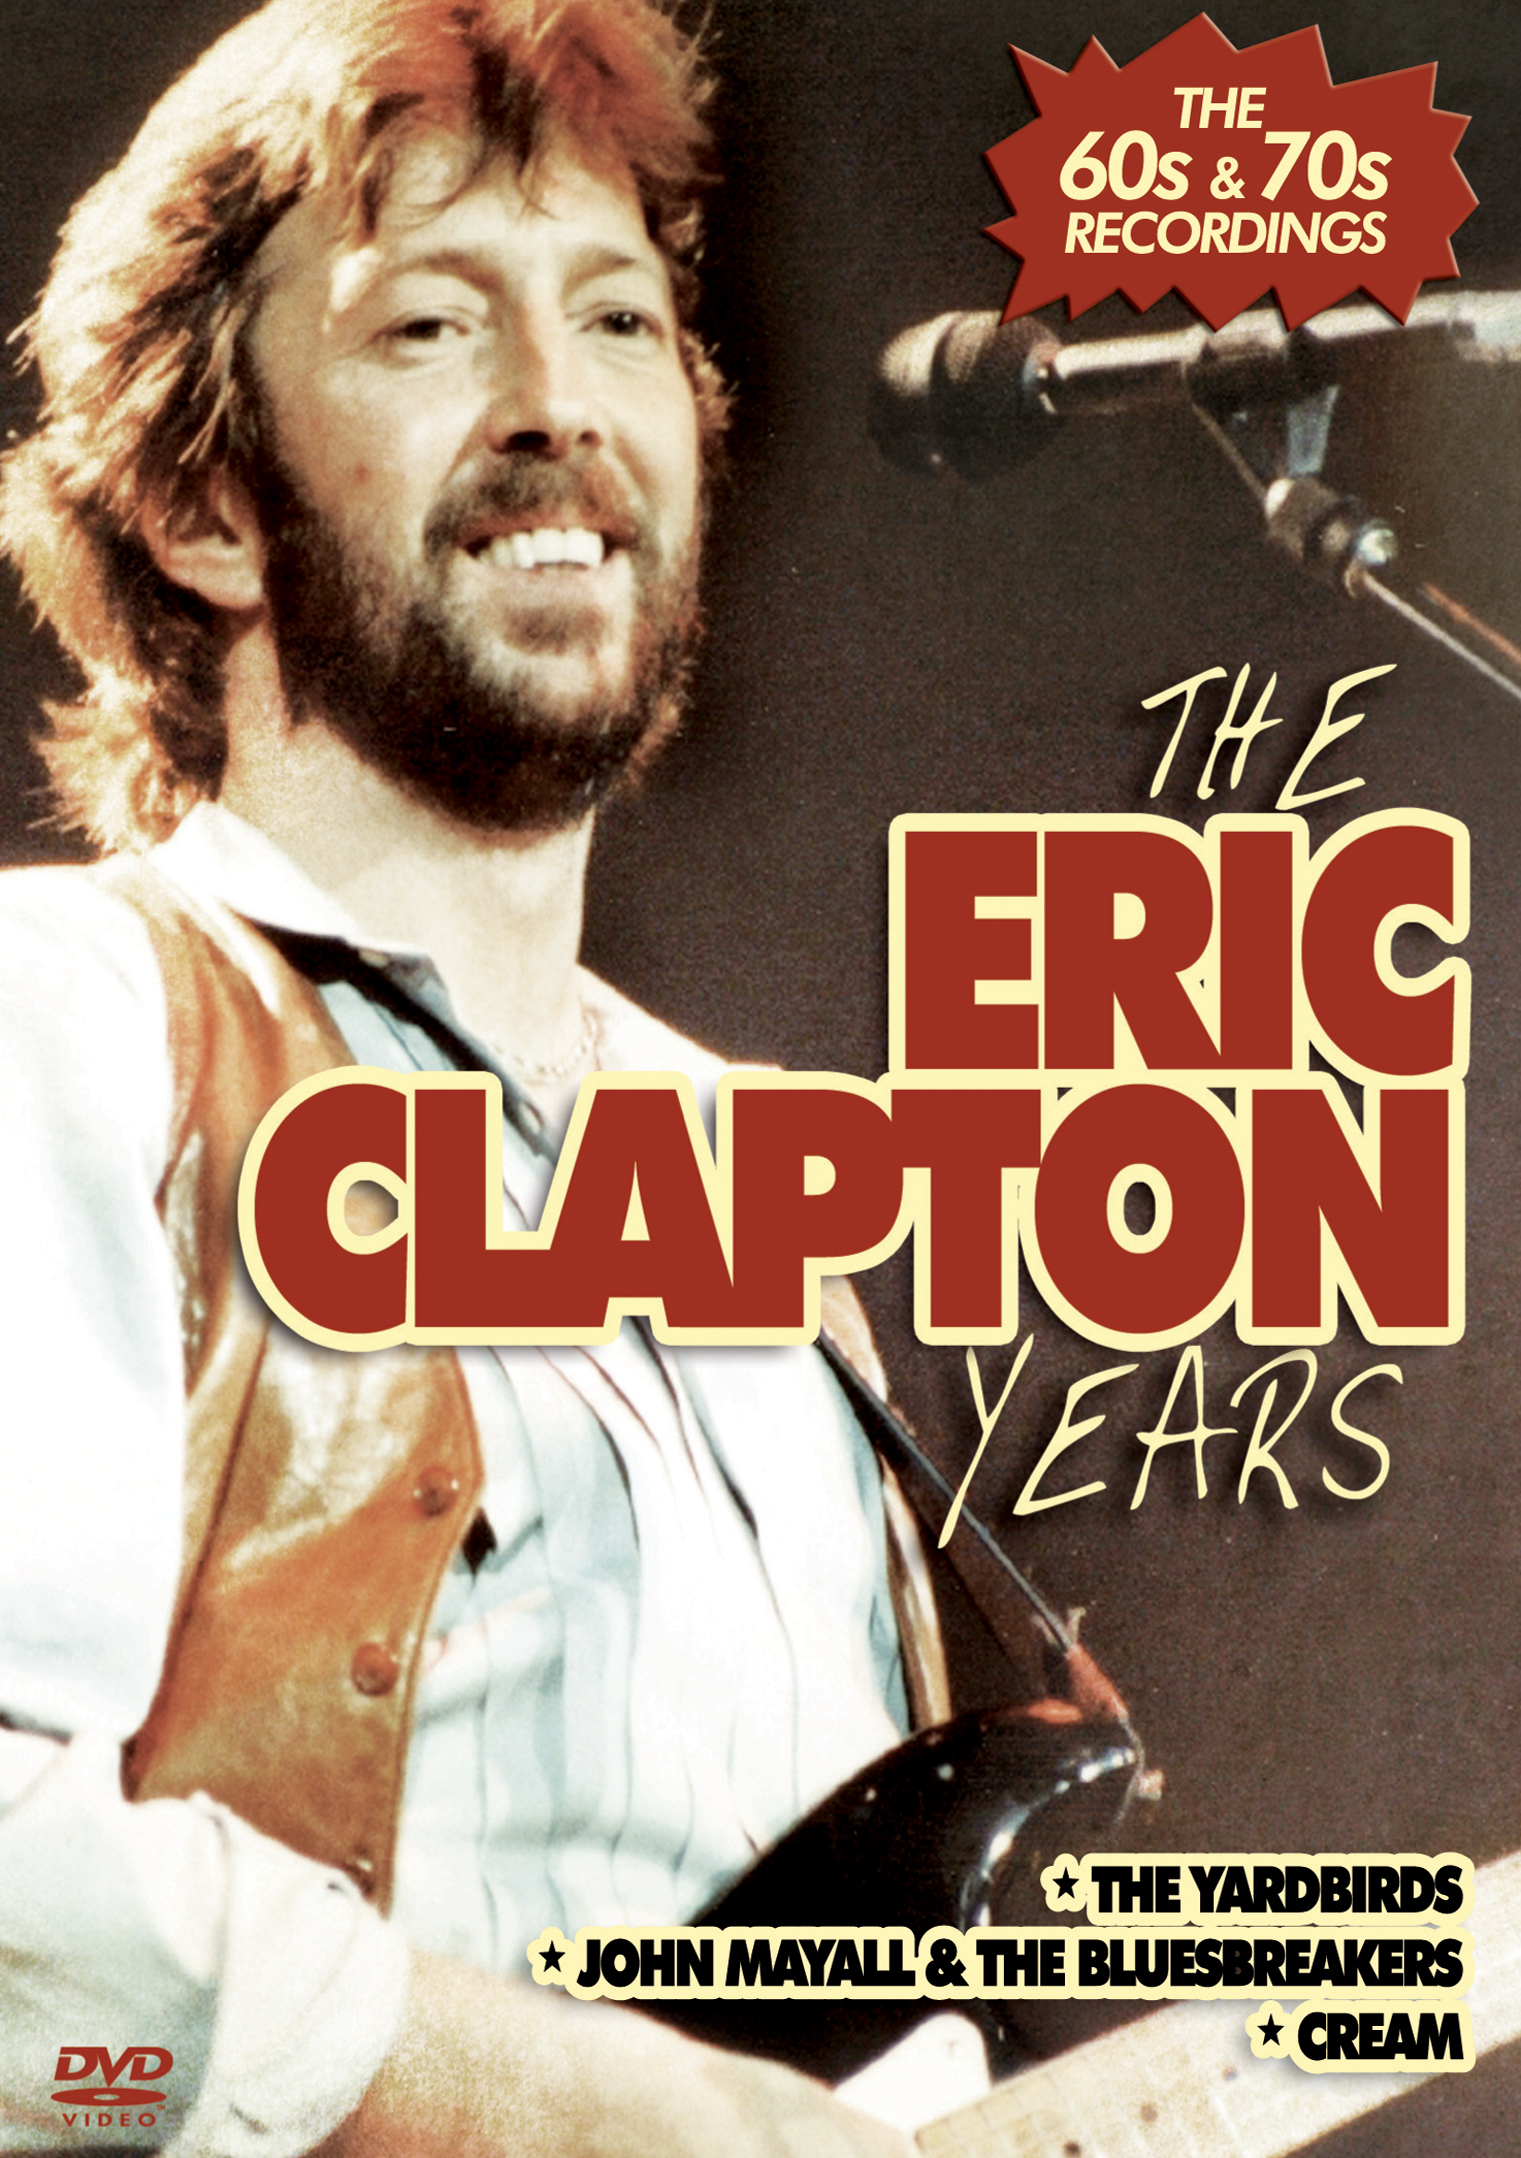 Eric Clapton: The Eric Clapton Years - The 60s & 70s Recordings